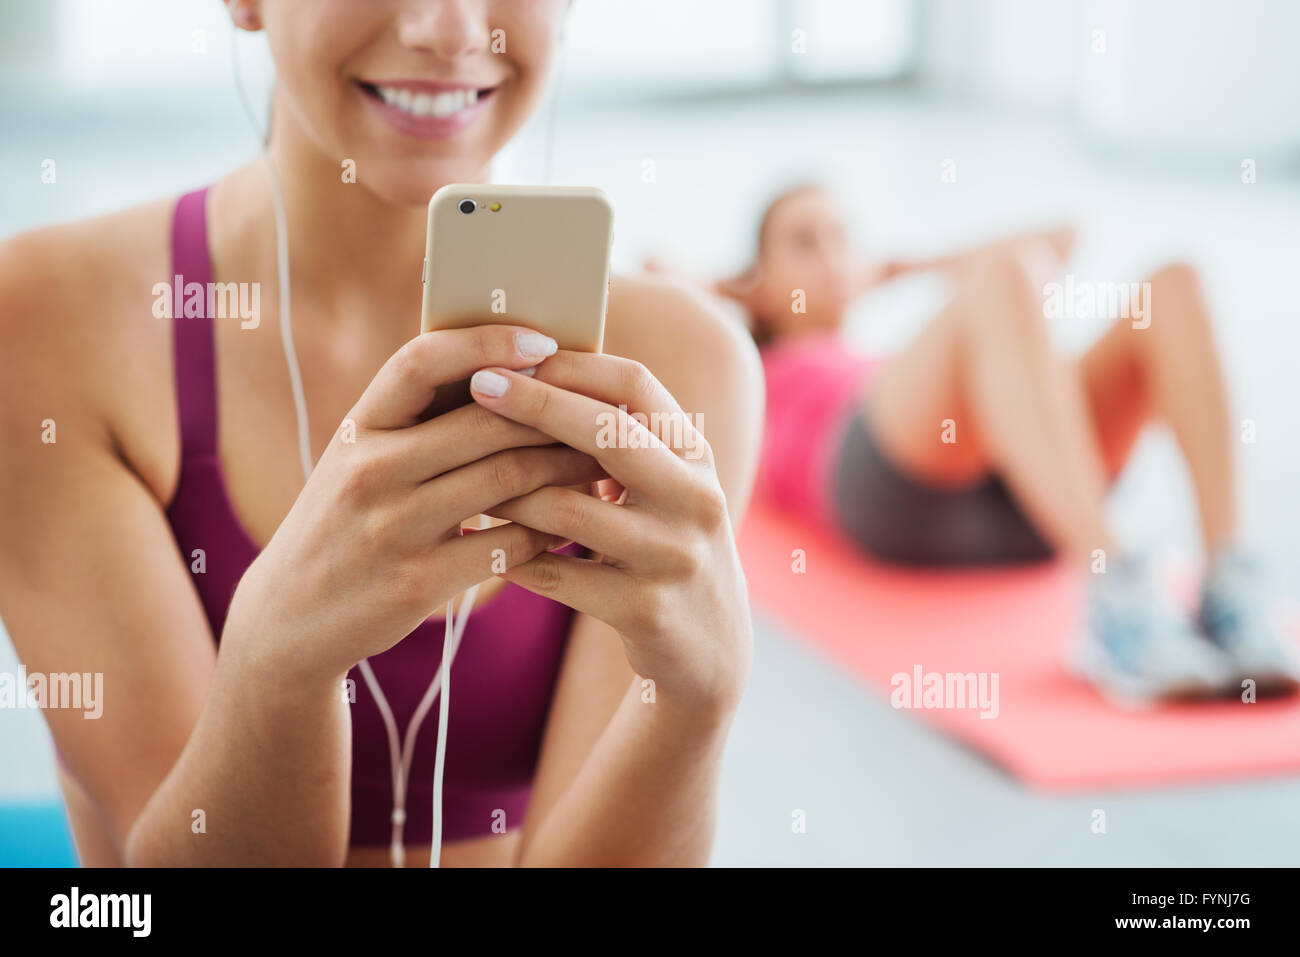 Young smiling woman at the gym relaxing and listening to music using a mobile phone and earphones - Stock Image